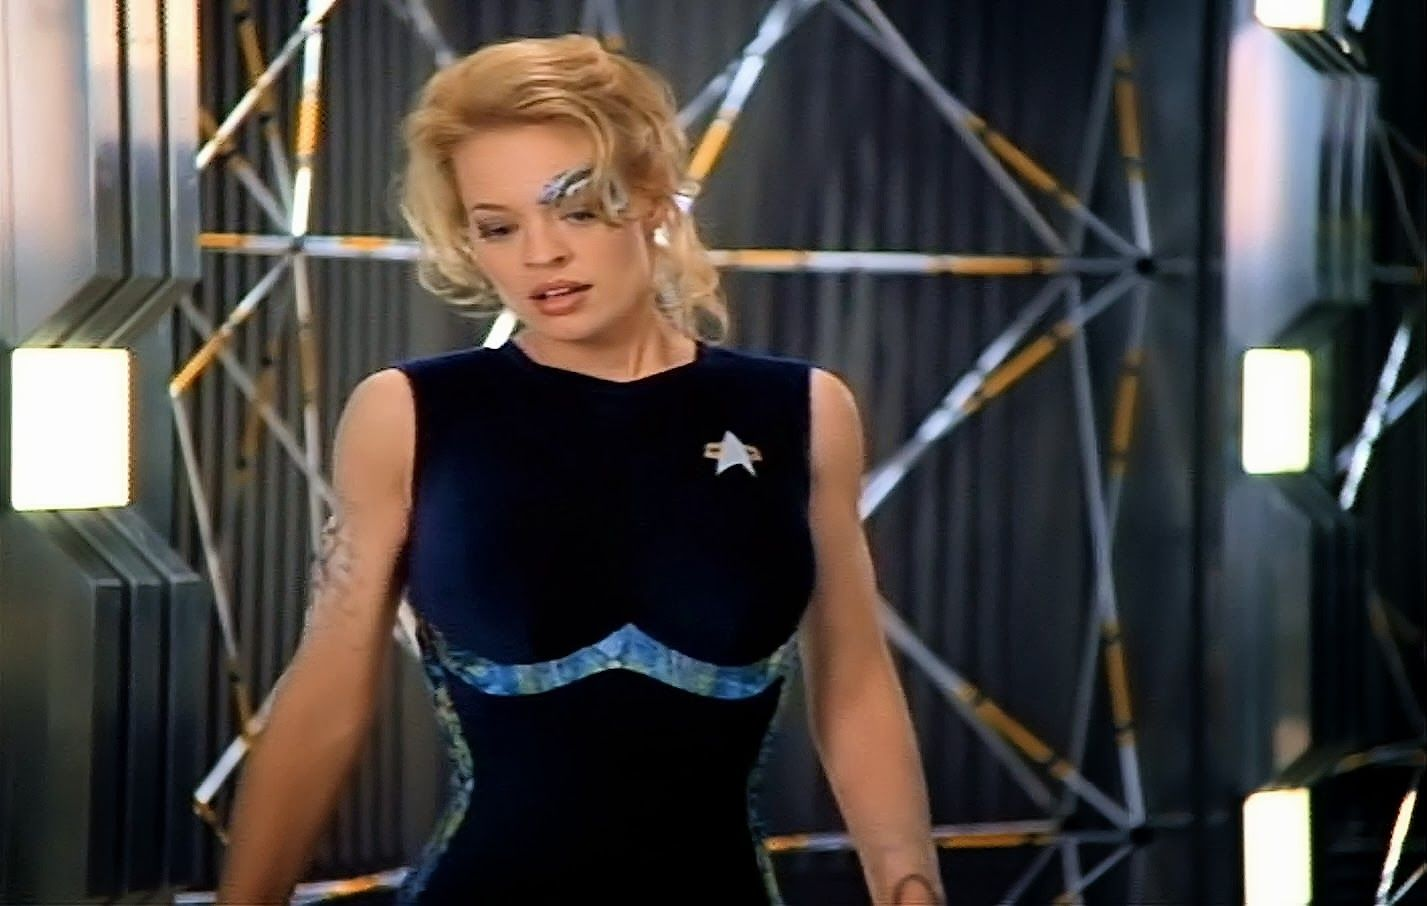 Presented Below Are Some Detailed Photos Of A Form Fitting Blue Jumpsuit Worn By The Lovely Jeri Ryan In Her Portray Star Trek Costume Star Trek Film Star Trek